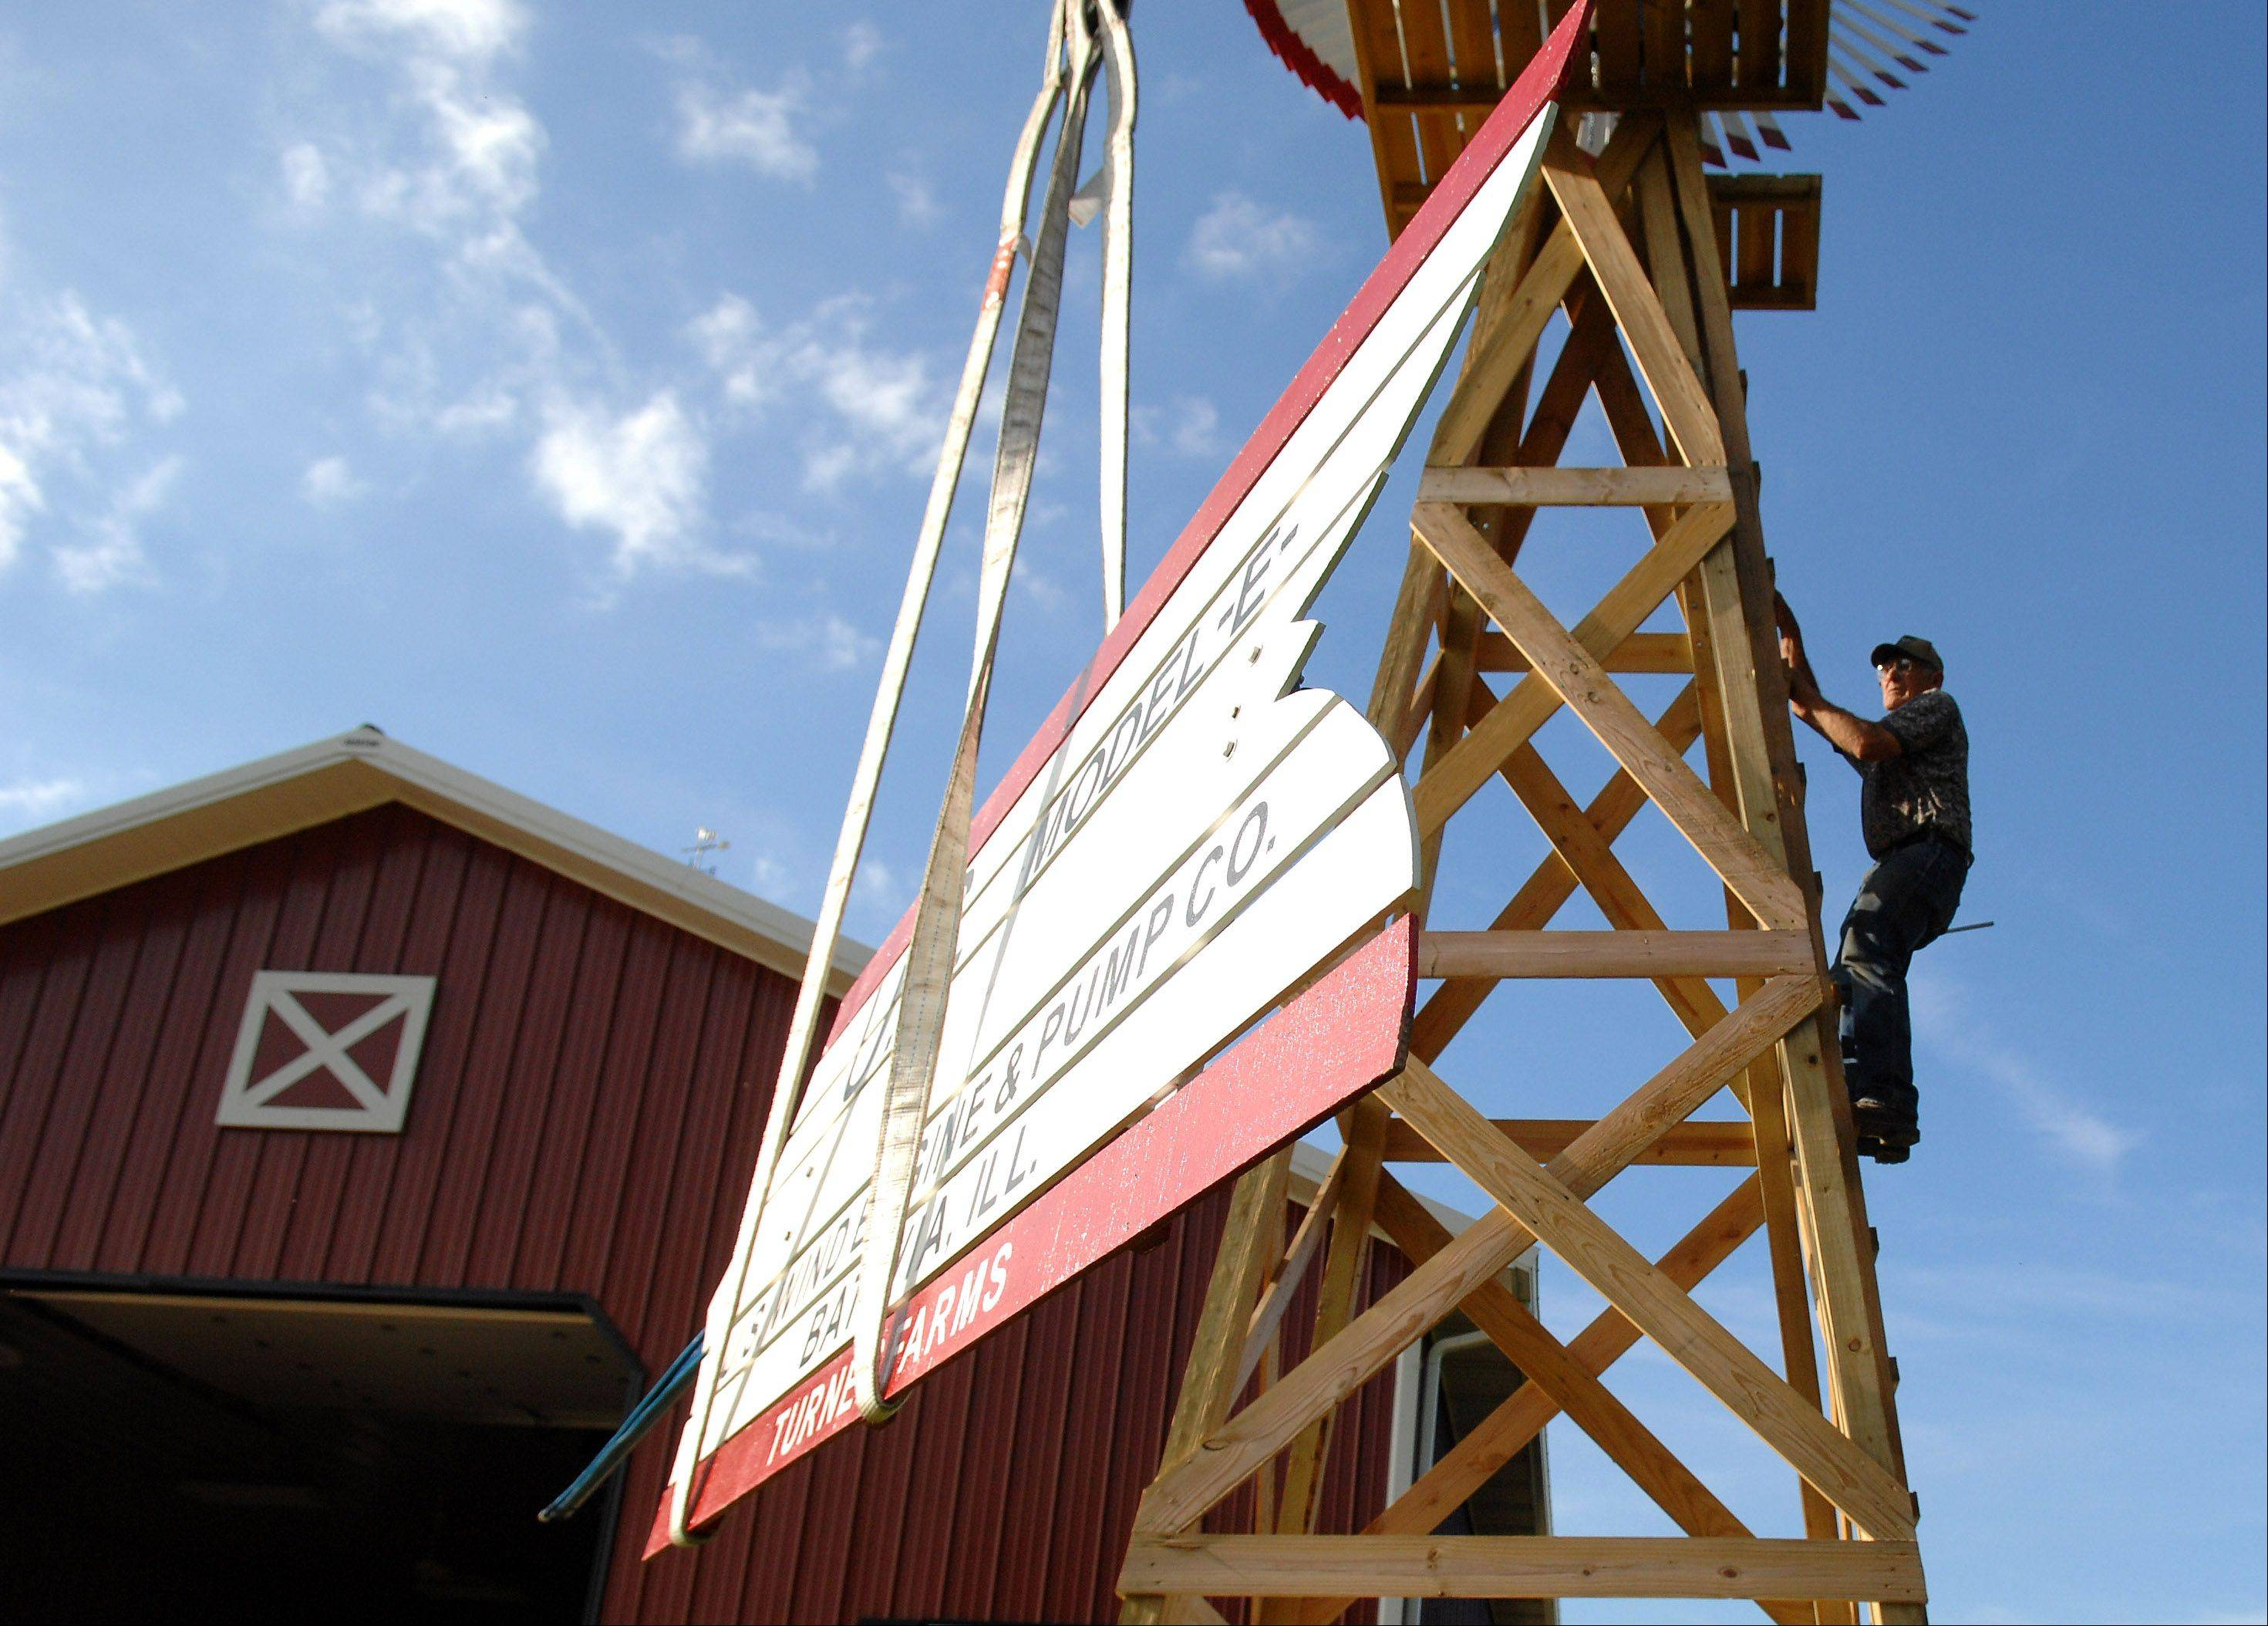 Engel climbs the tower to meet the tail as a crane lifts it to the top.